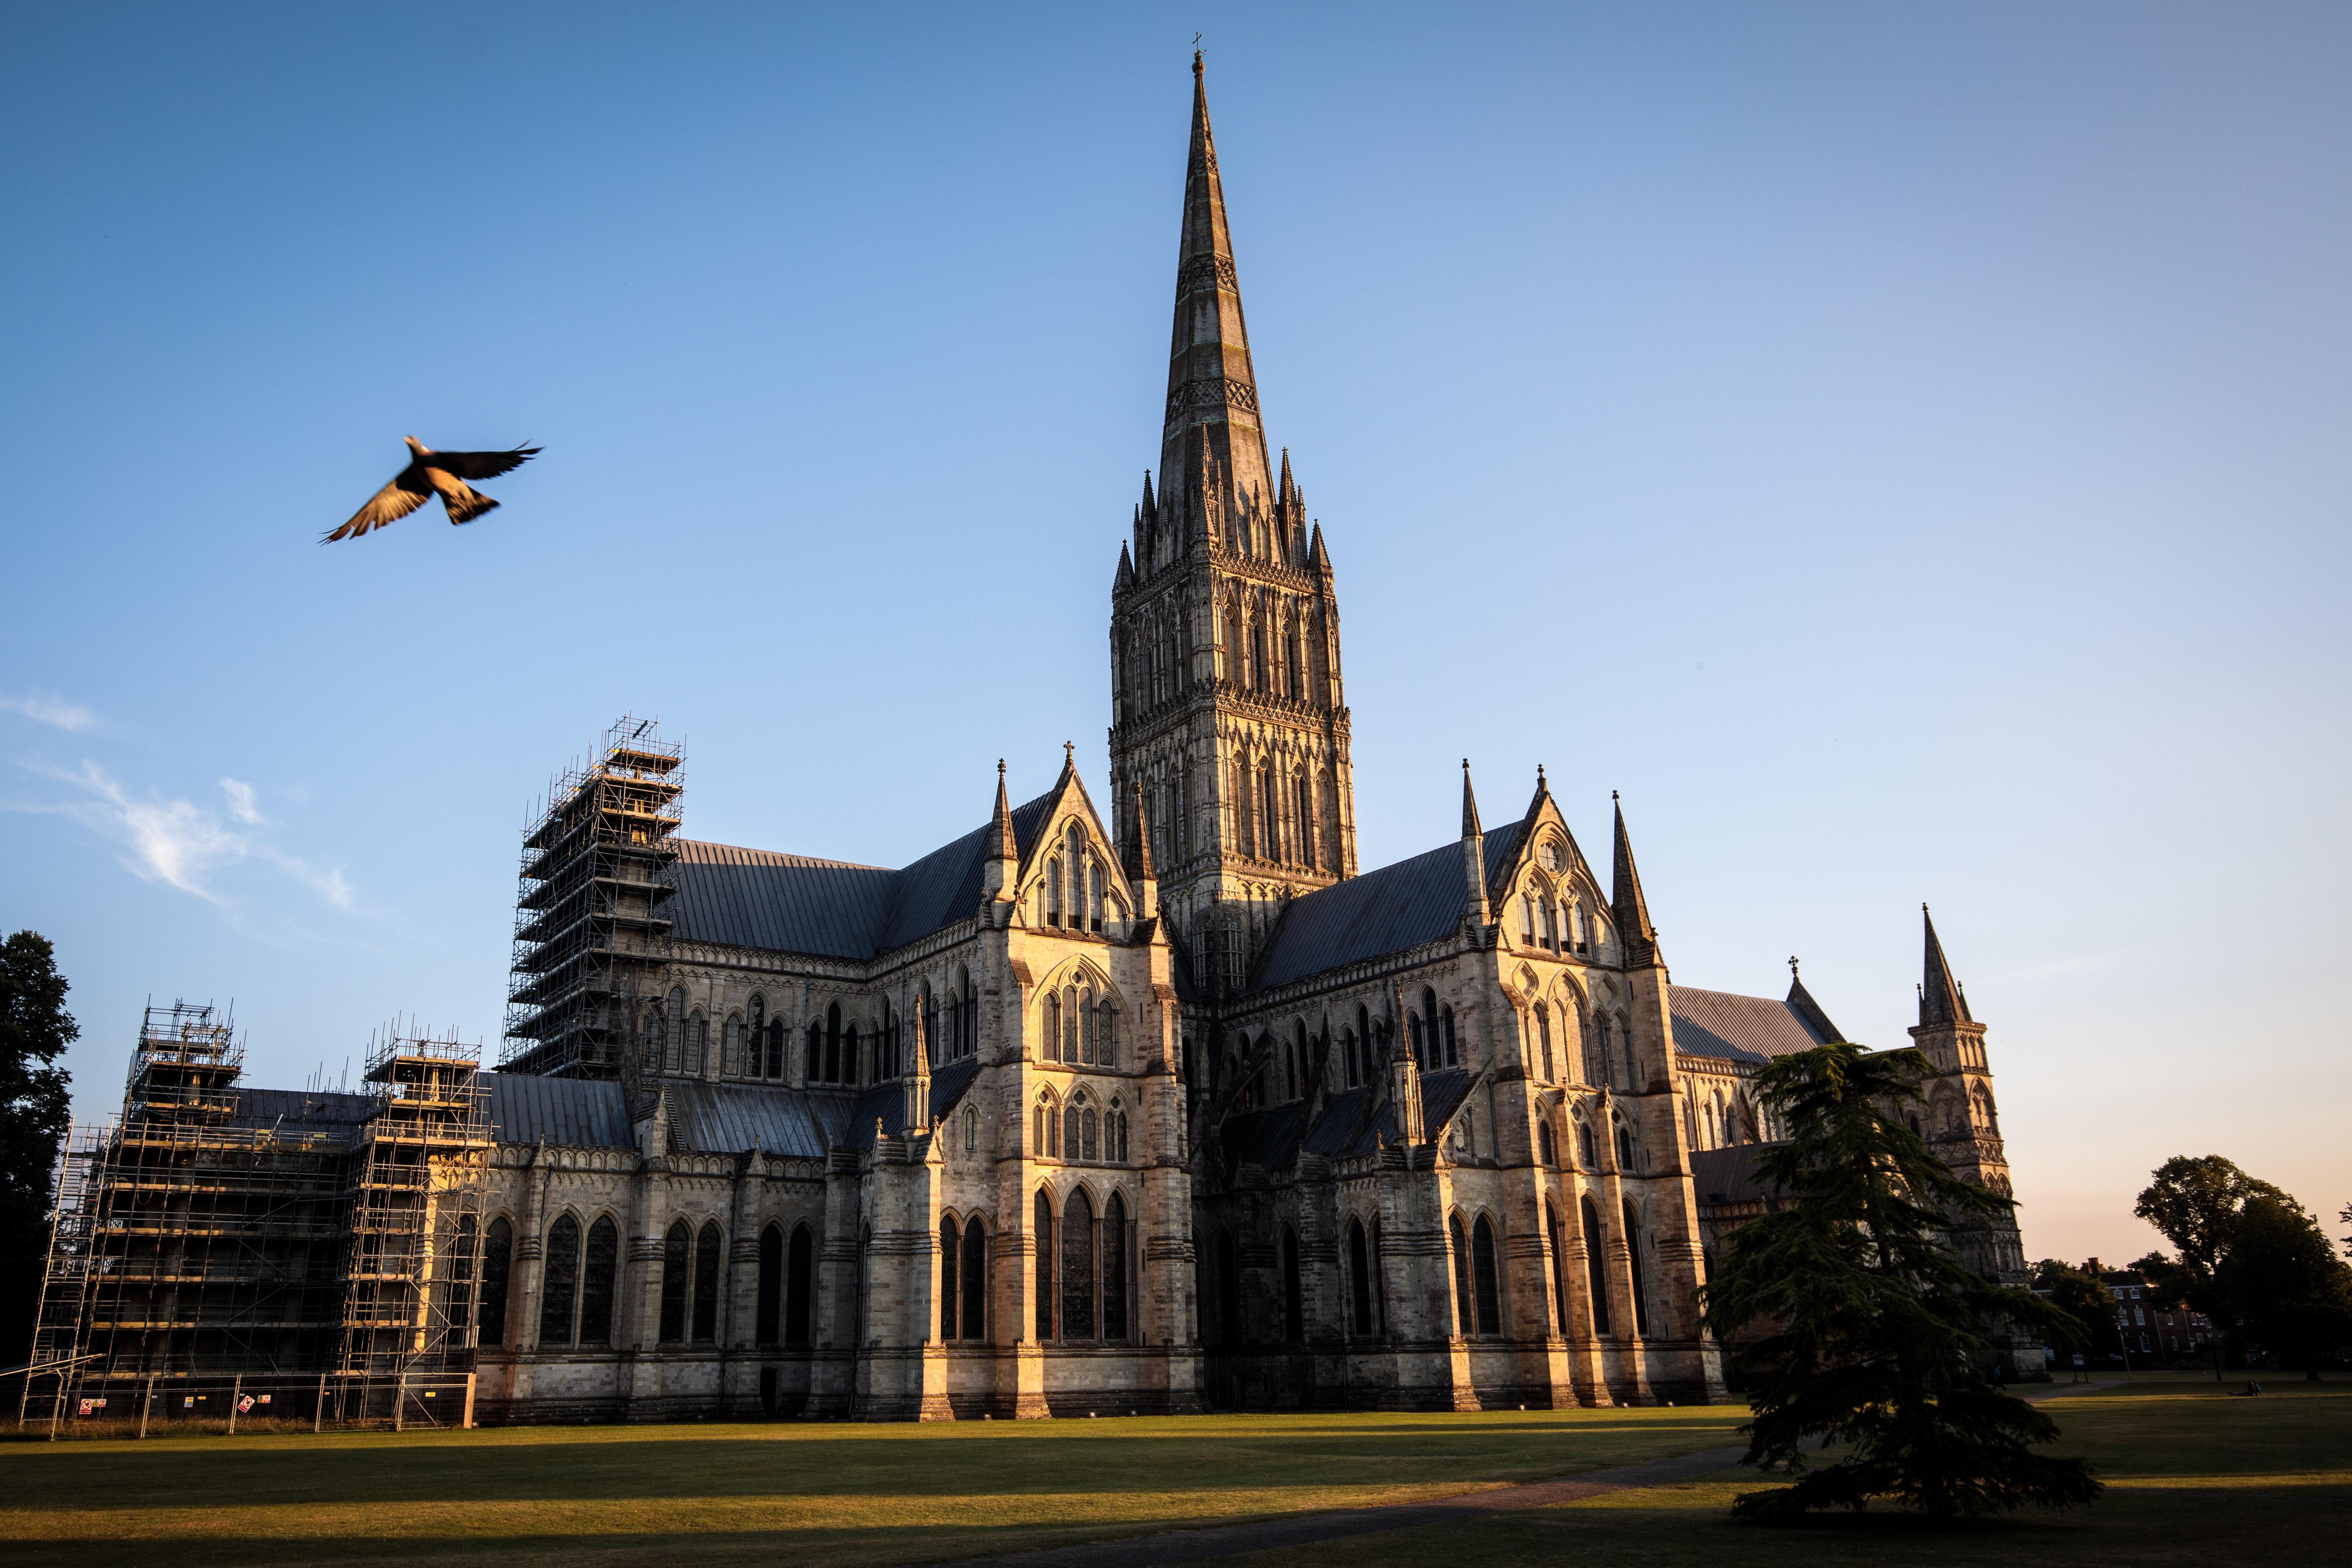 SA pigeon flies past Salisbury Cathedral as the sun sets on July 4, 2018 in Salisbury, England.